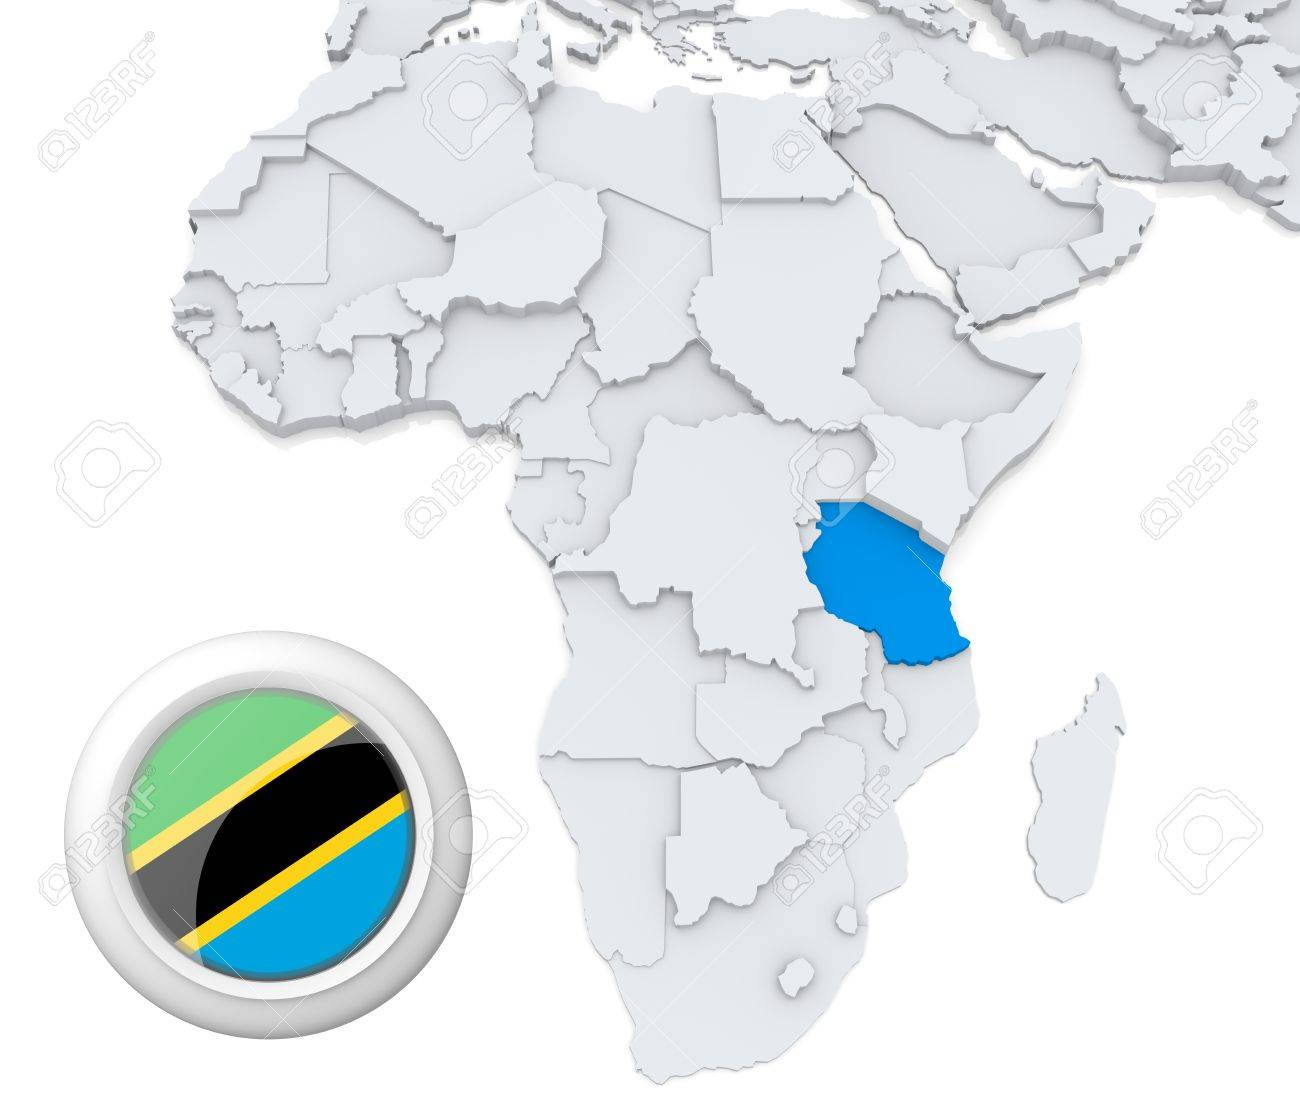 Map Of Africa Tanzania.3d Modeled Map Of Africa With Highlighted State Of Tanzania With